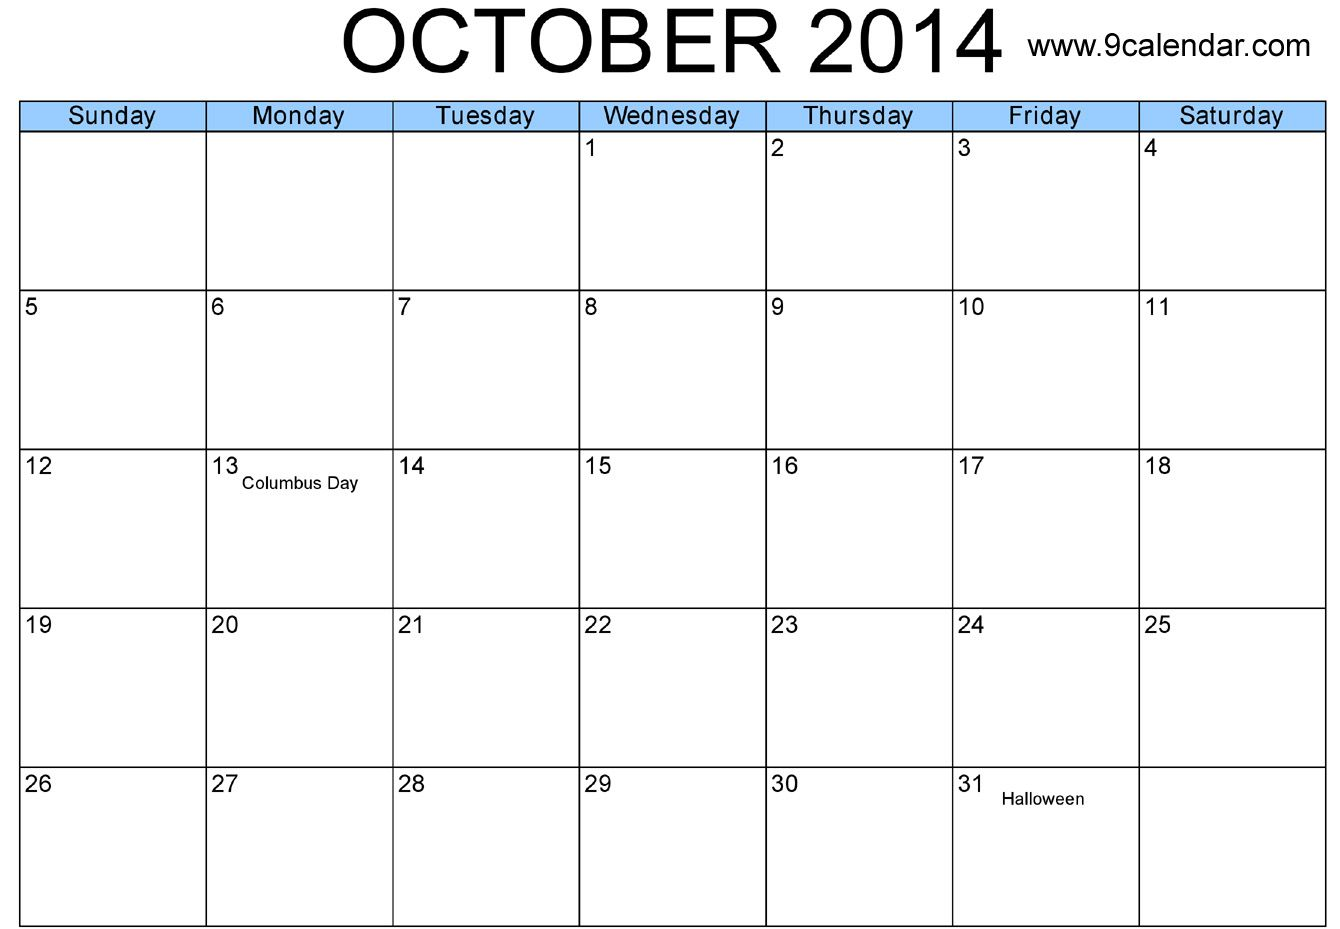 October 2014 calendar printable template httpcalendarvip october 2014 calendar printable template httpcalendarvip saigontimesfo